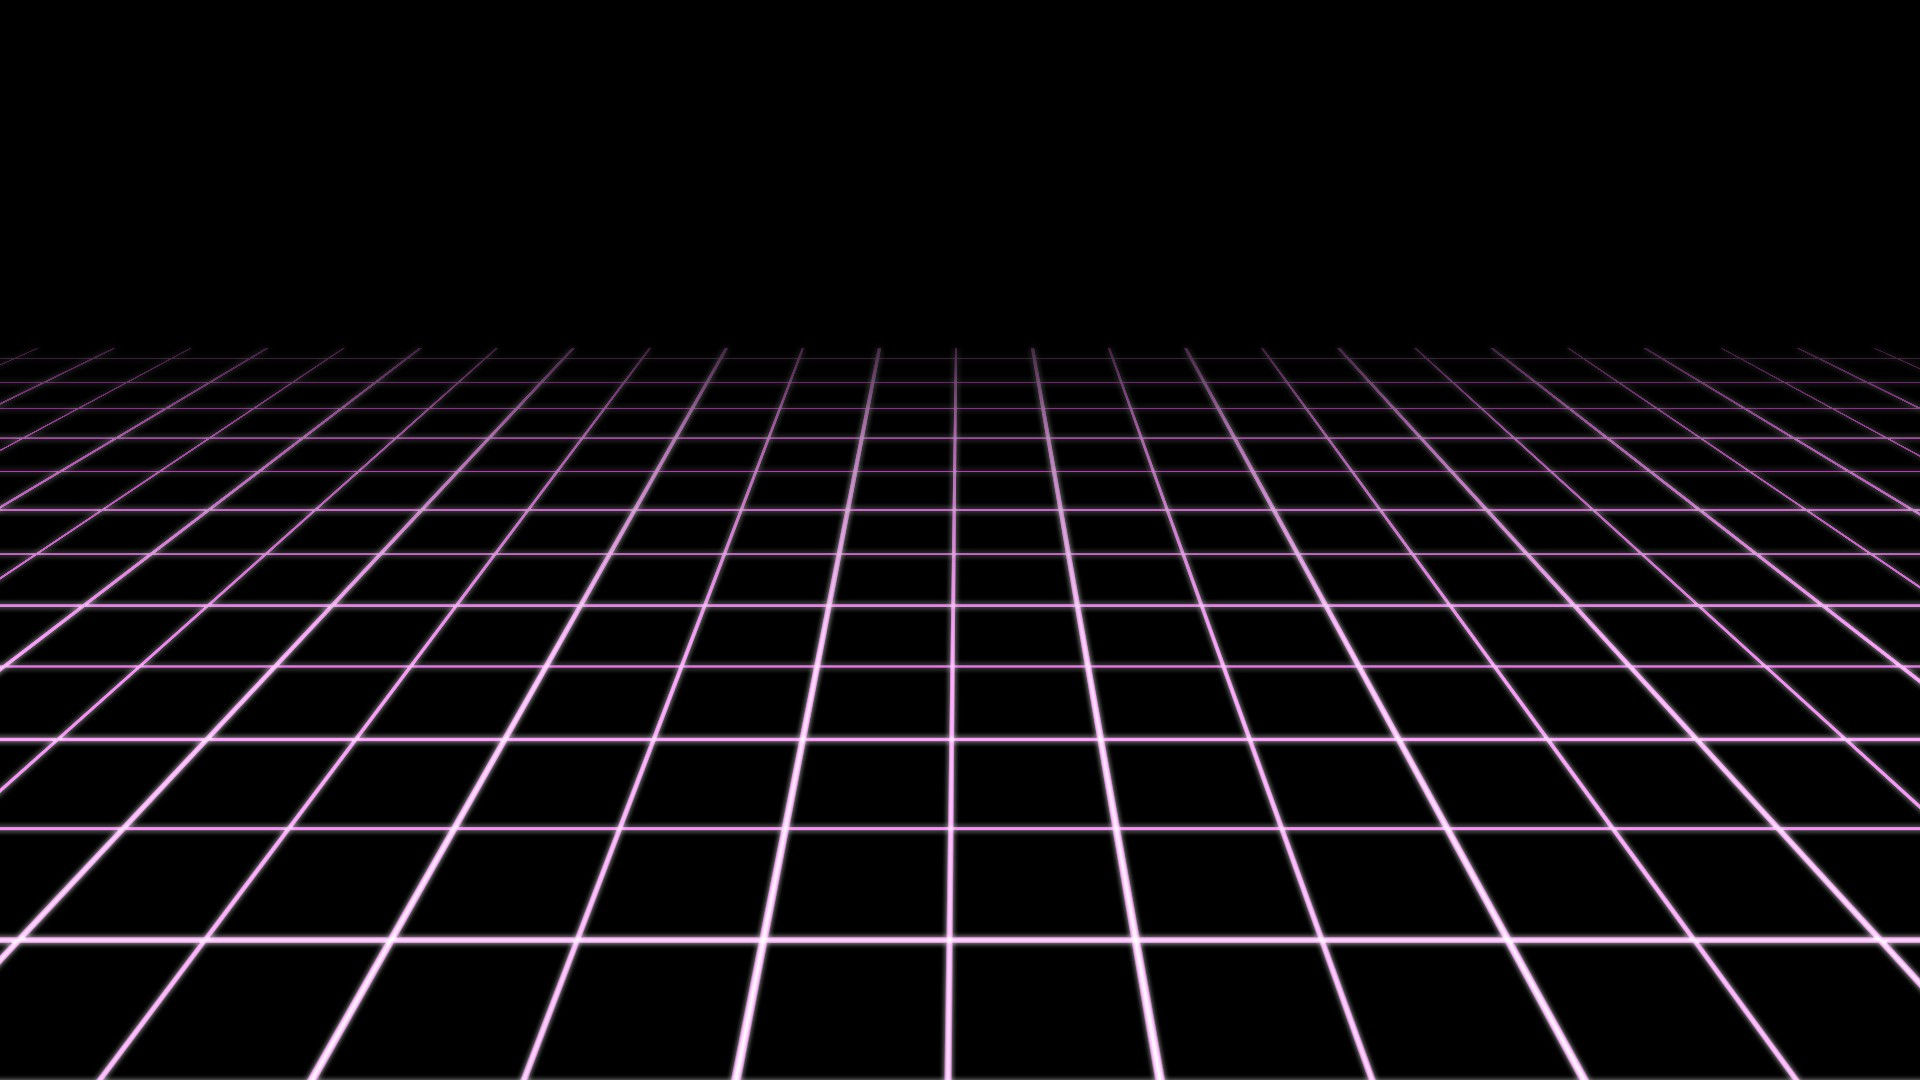 Grid Wallpaper 1 Download Free Cool HD Wallpapers For Desktop And